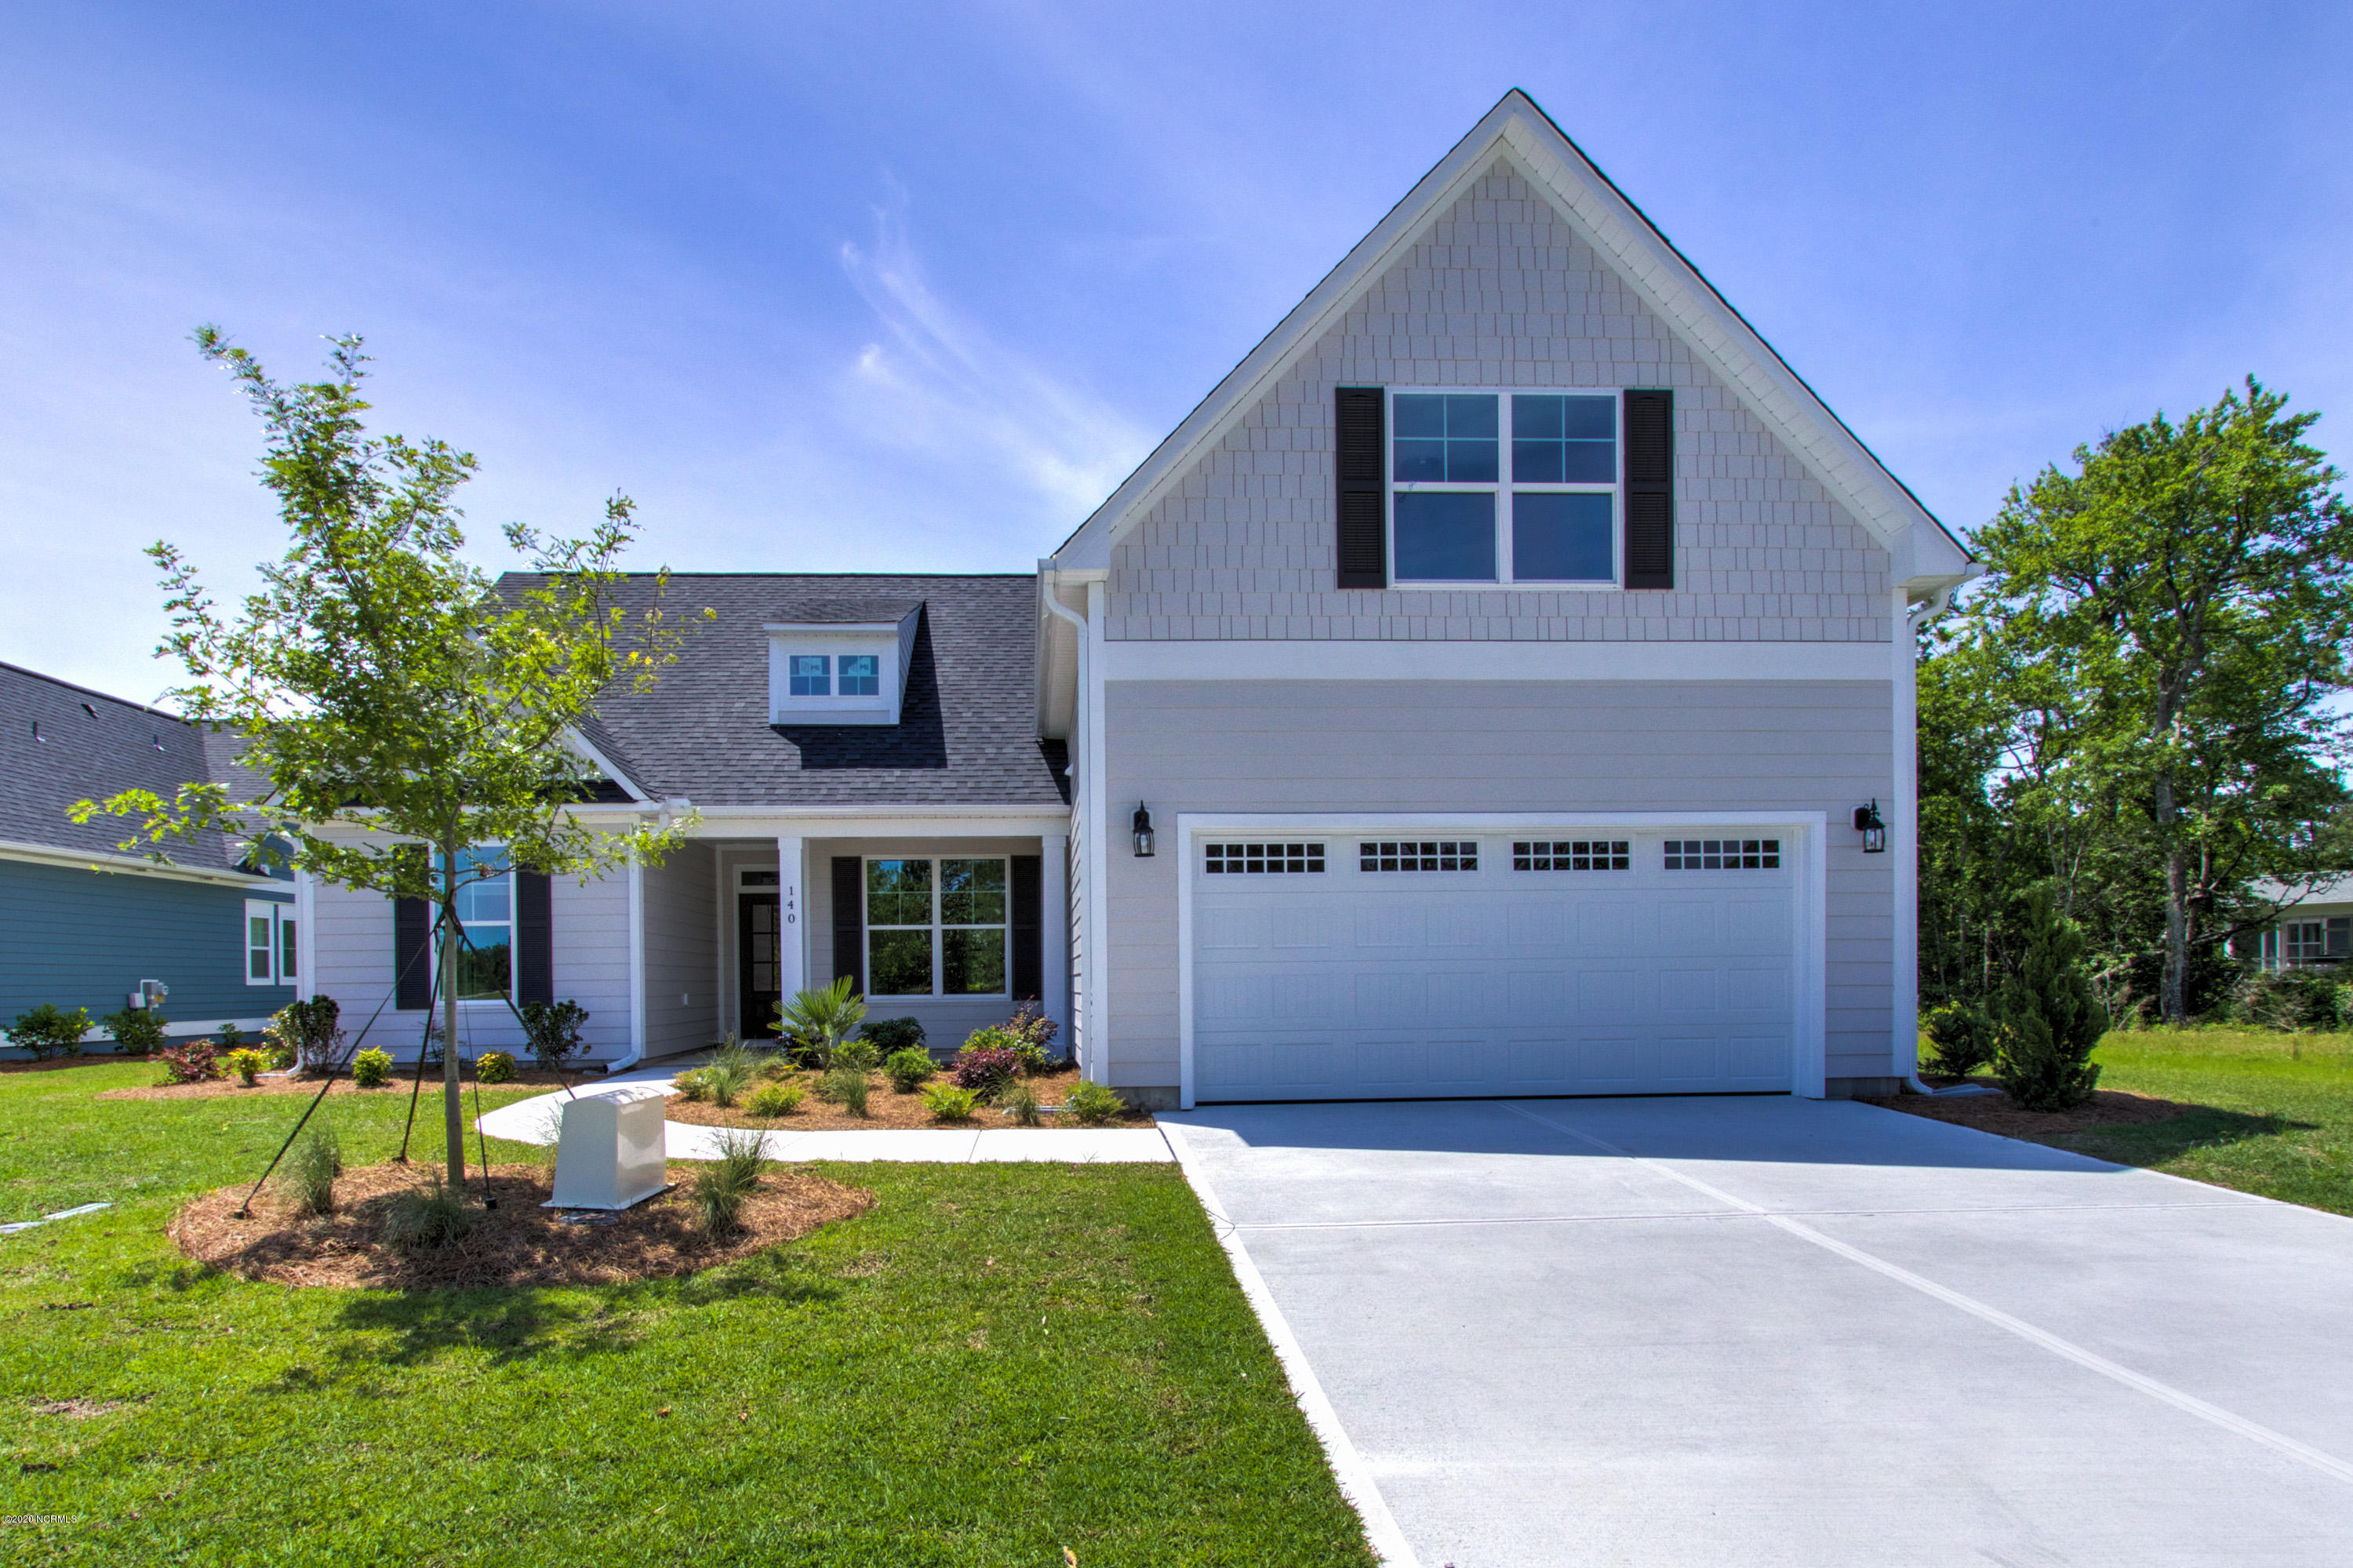 140 Twining Rose Lane, Holly Ridge, North Carolina 28445, 3 Bedrooms Bedrooms, ,3 BathroomsBathrooms,Residential,For Sale,Twining Rose,100214076